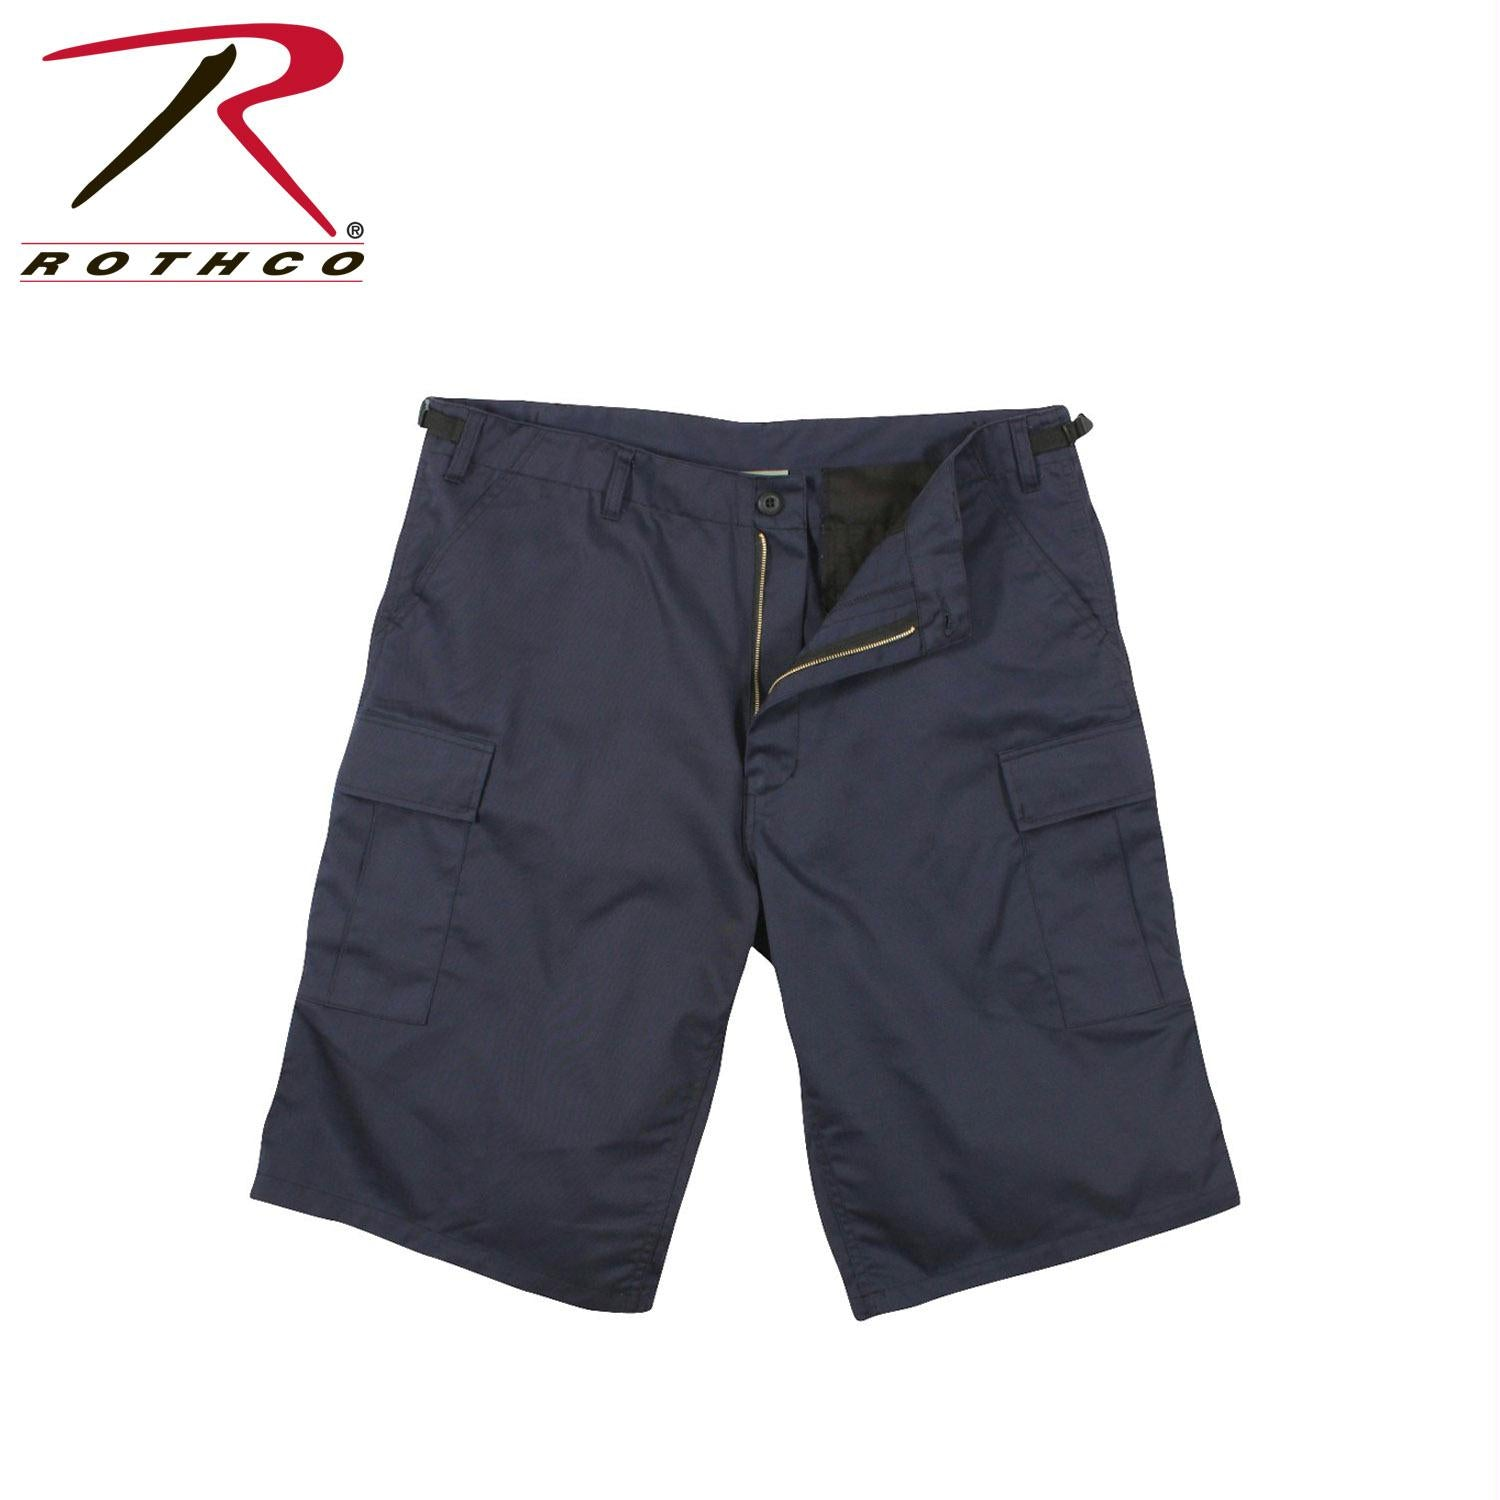 Rothco Long Length BDU Short - Navy Blue / 3XL